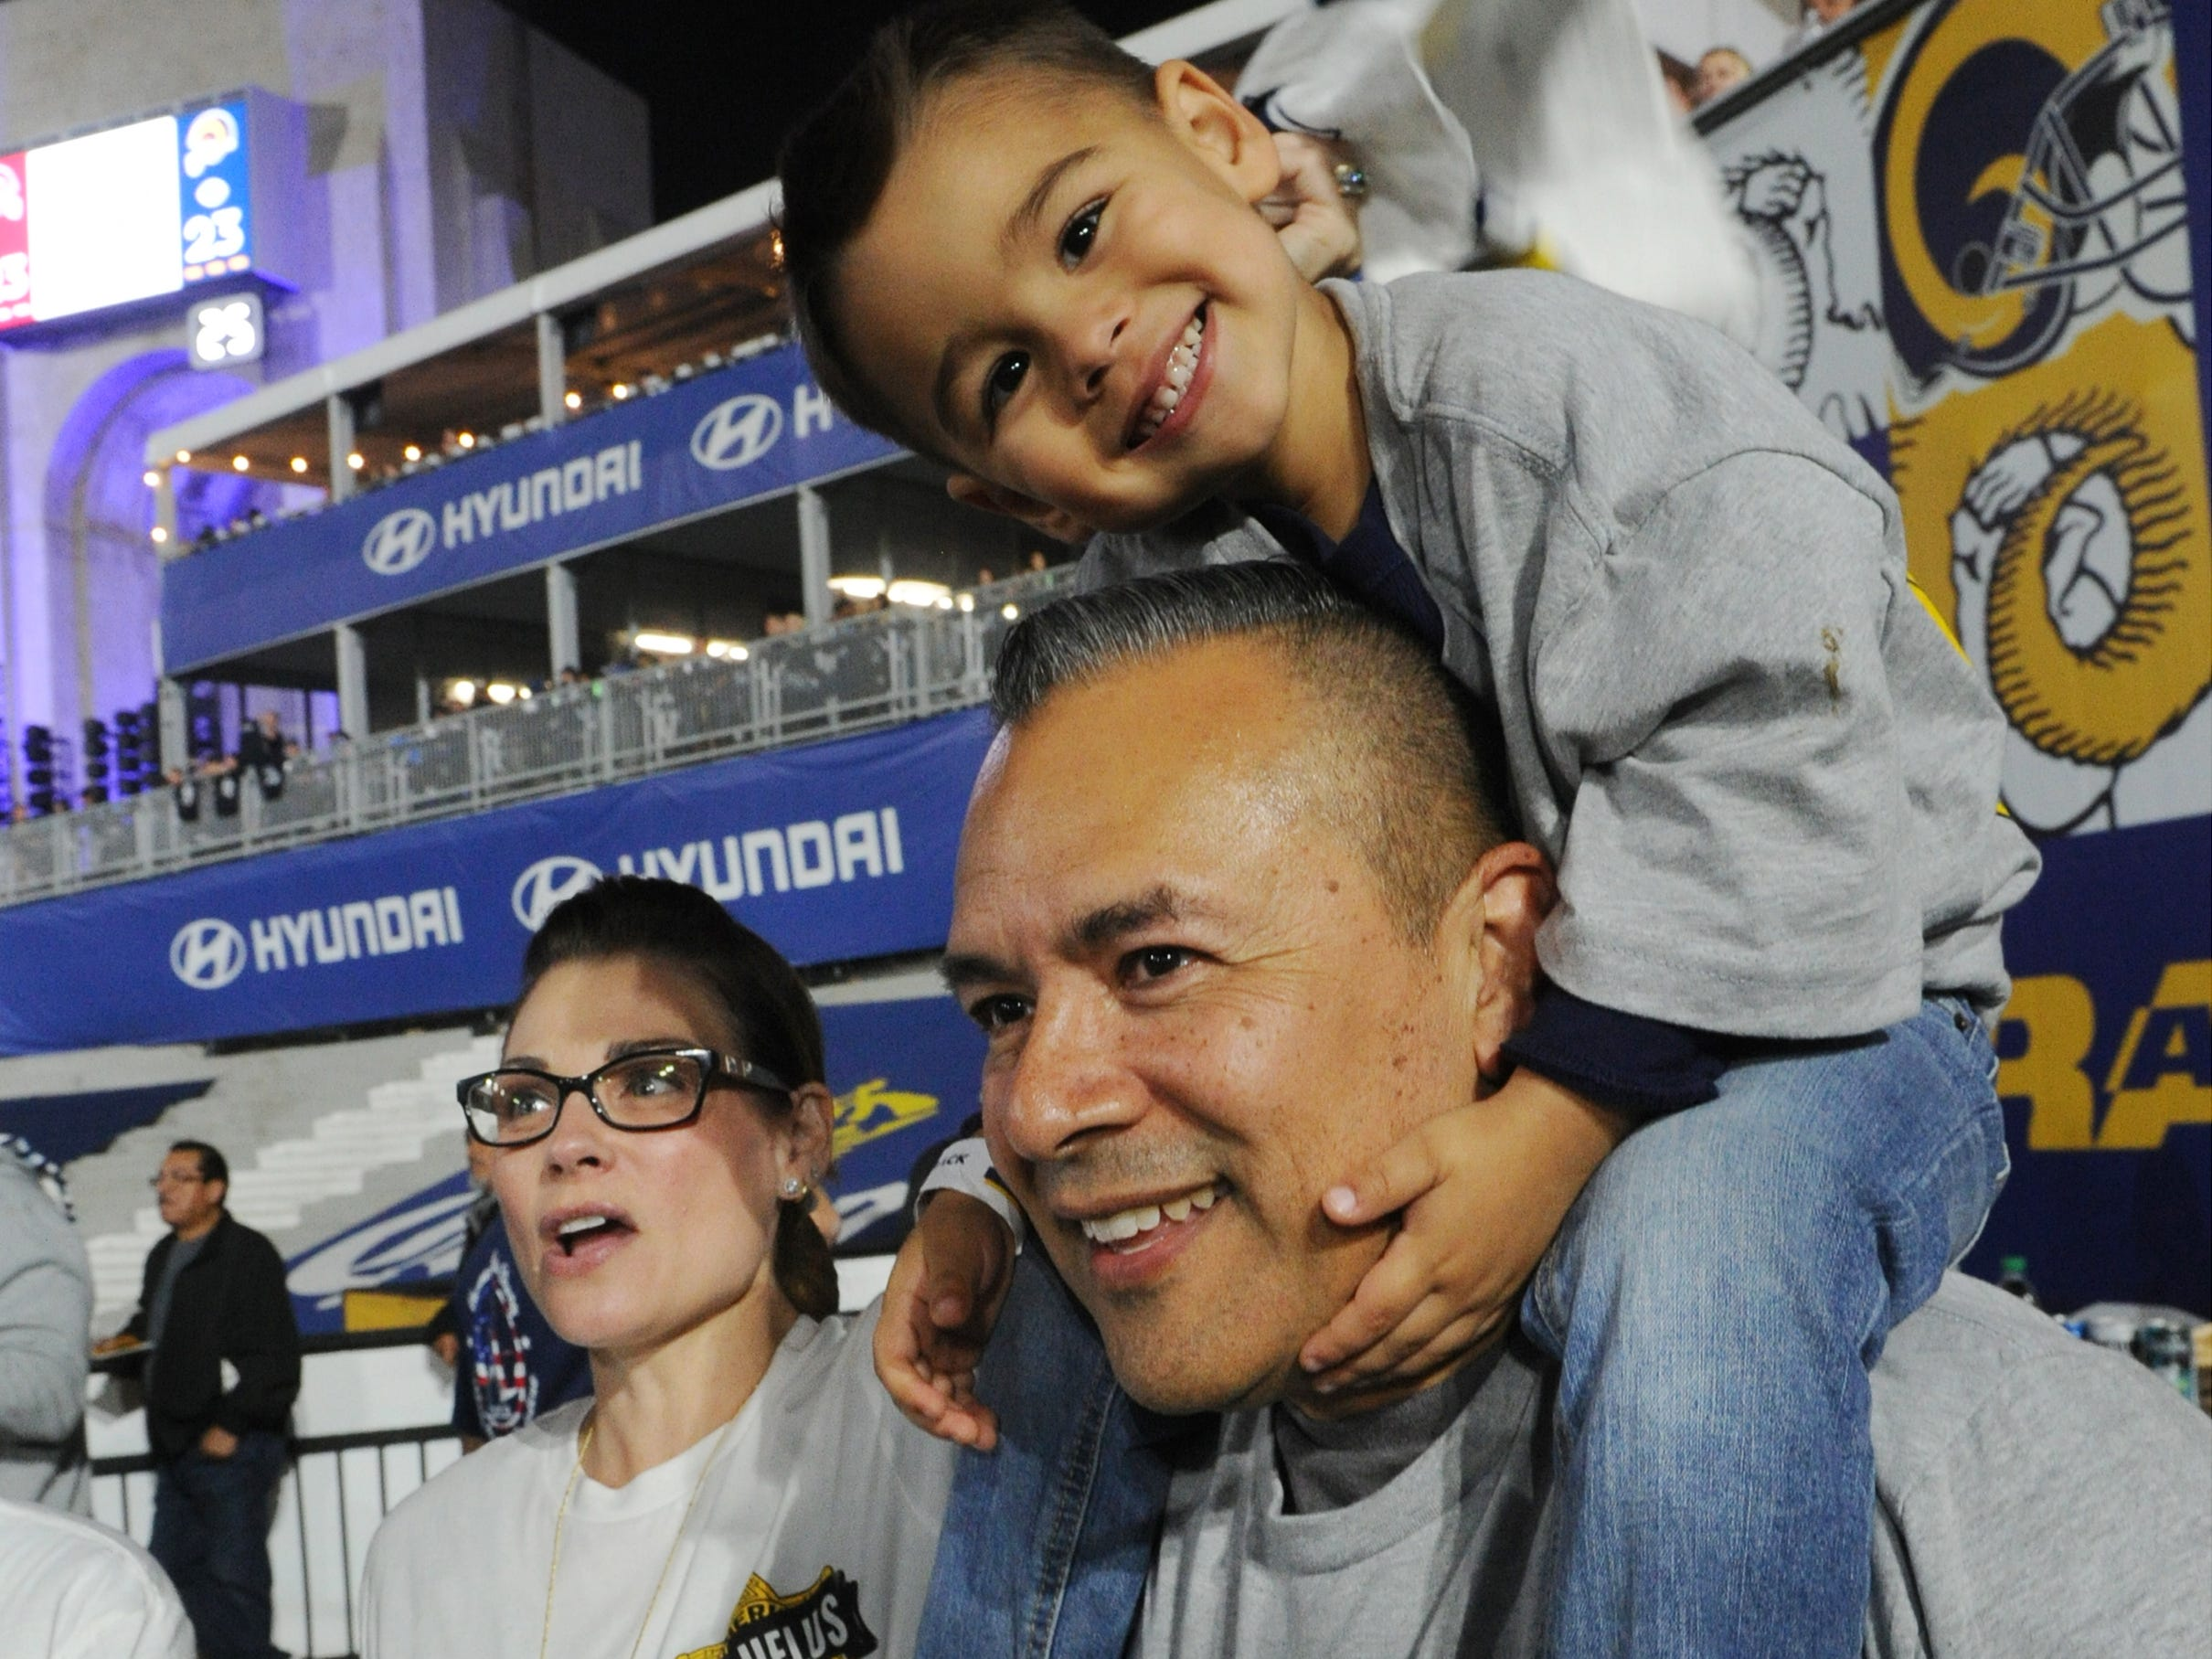 First responder Sgt. Jose Rivera, of Camarillo and the from the Ventura County Sheriff's Department, and his son Kelley, 3, and wife Tristen enjoy Monday night's game between the Rams and the Chiefs at the Coliseum.